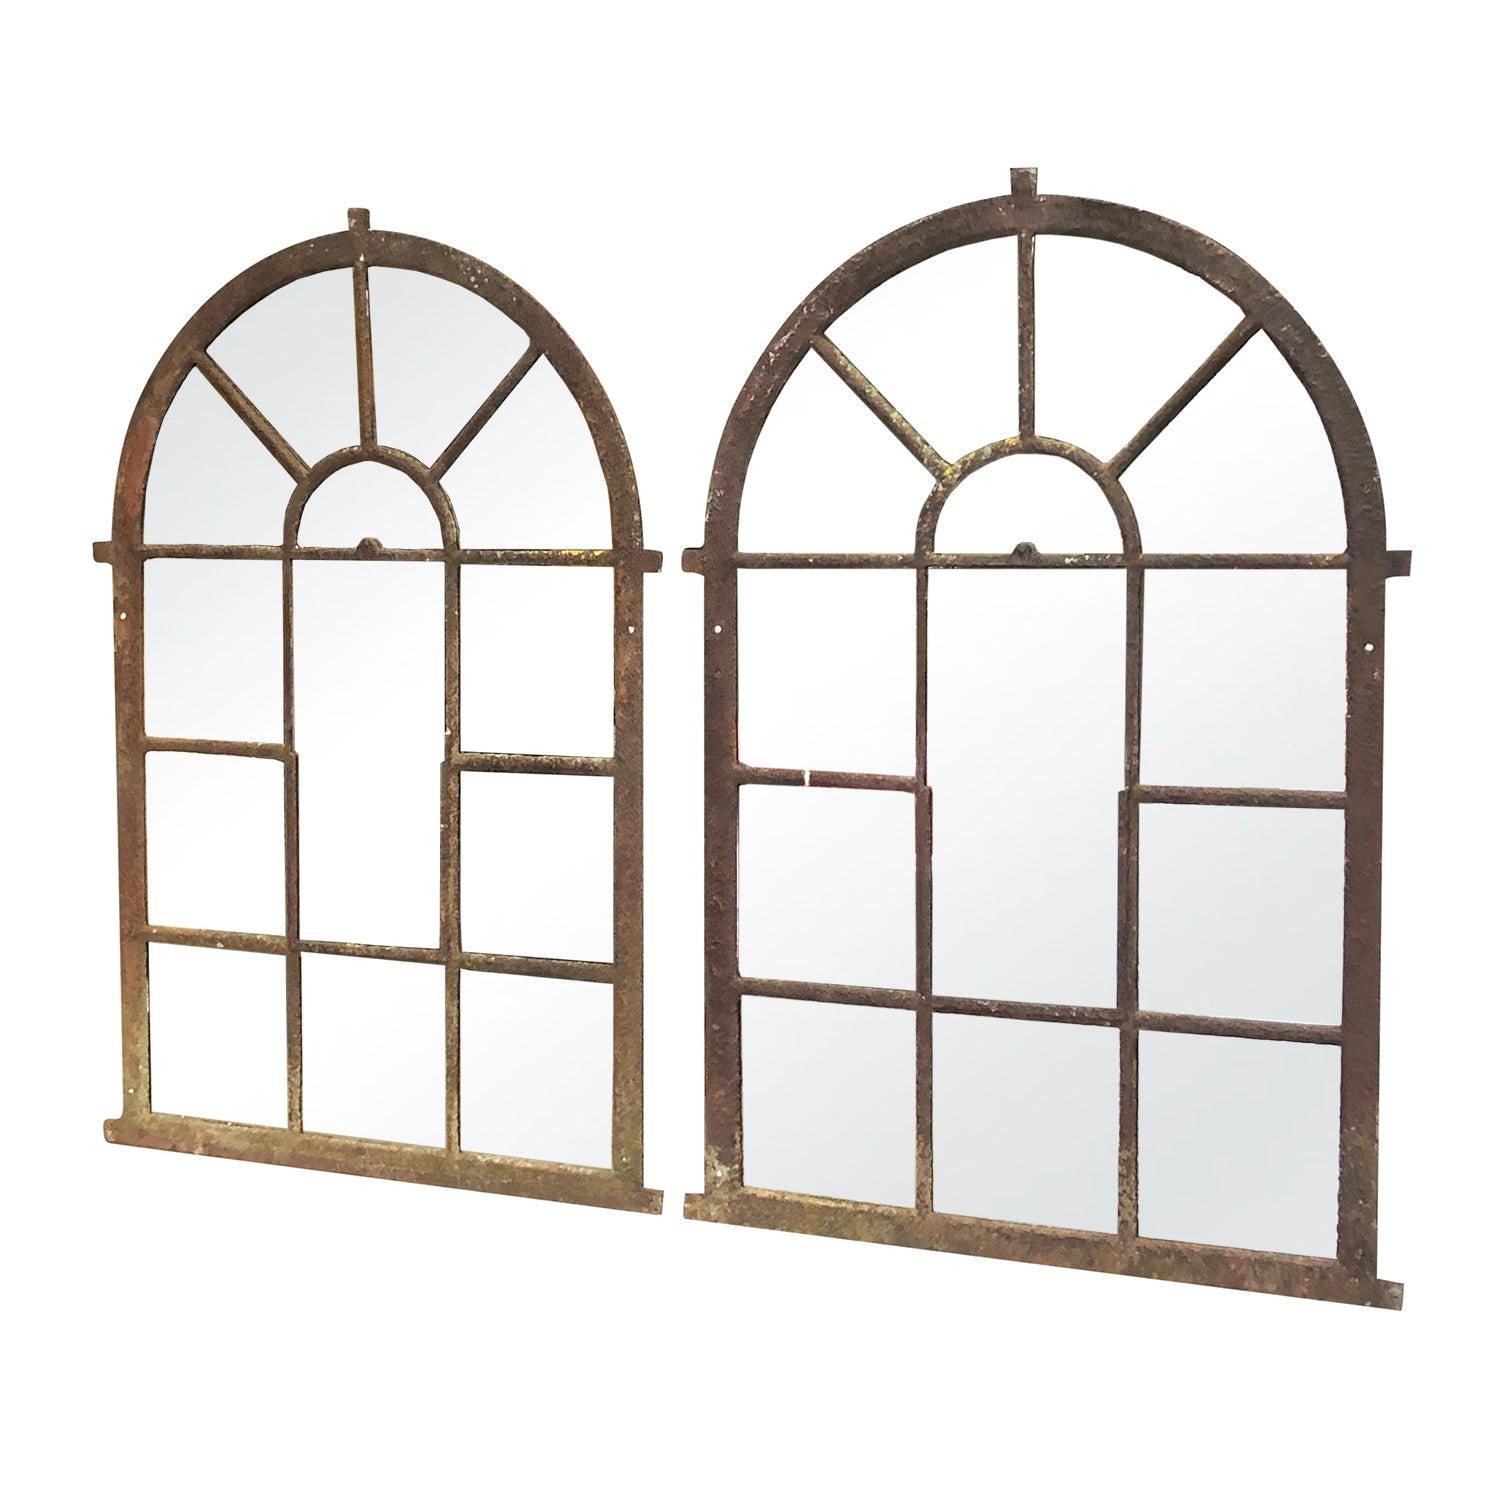 19th Century French Pair of Tall Guillard, Orangerie Metal Wall Mirrors